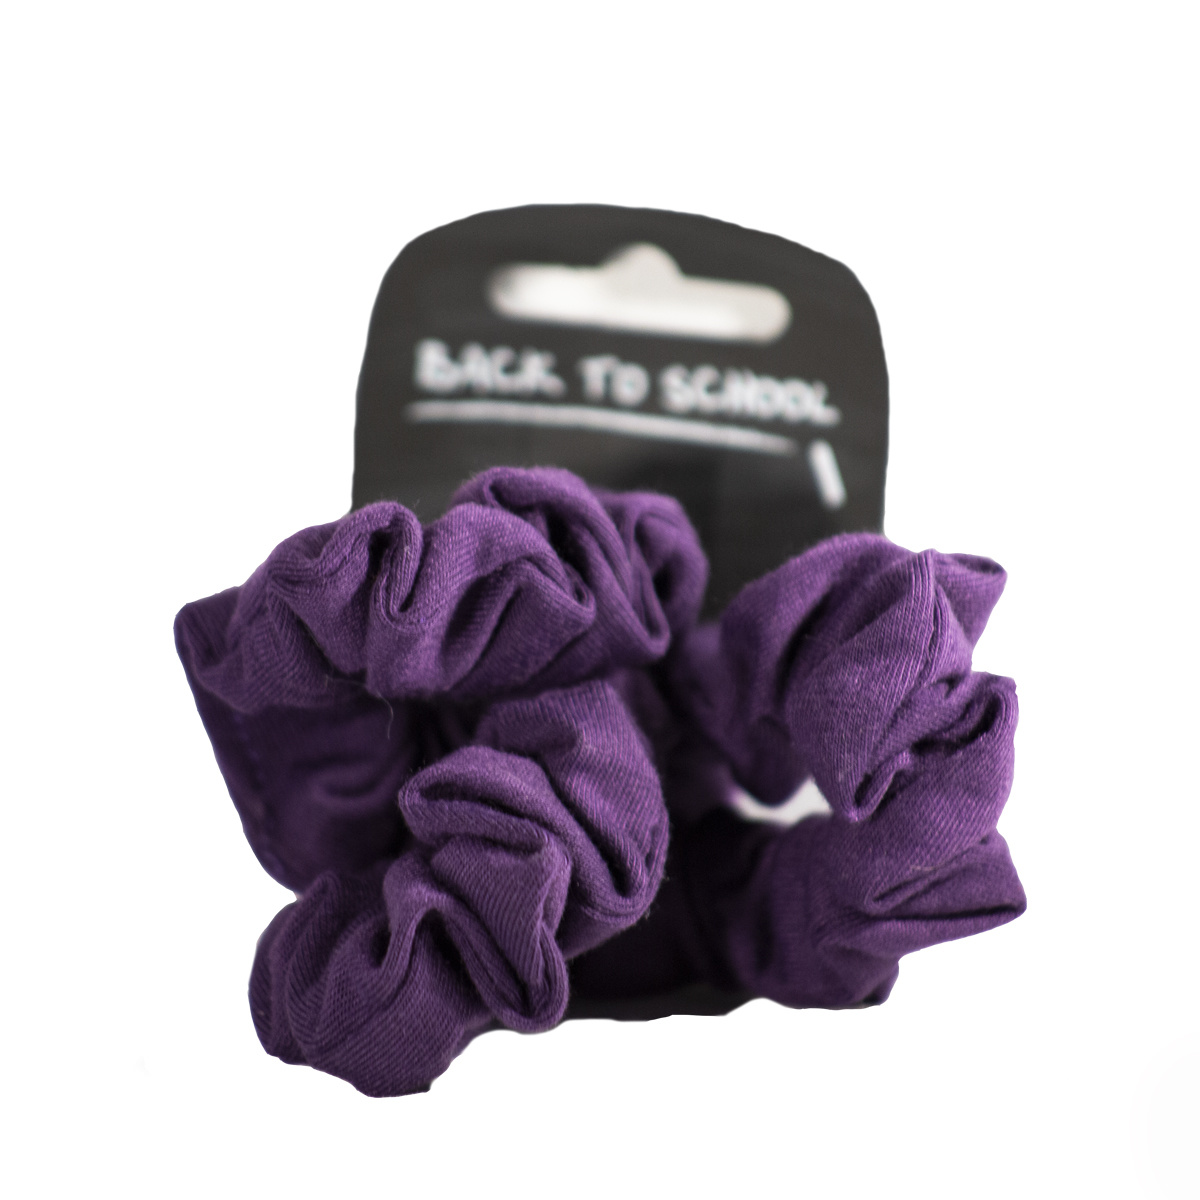 Jersey Scrunchie (3 pack)